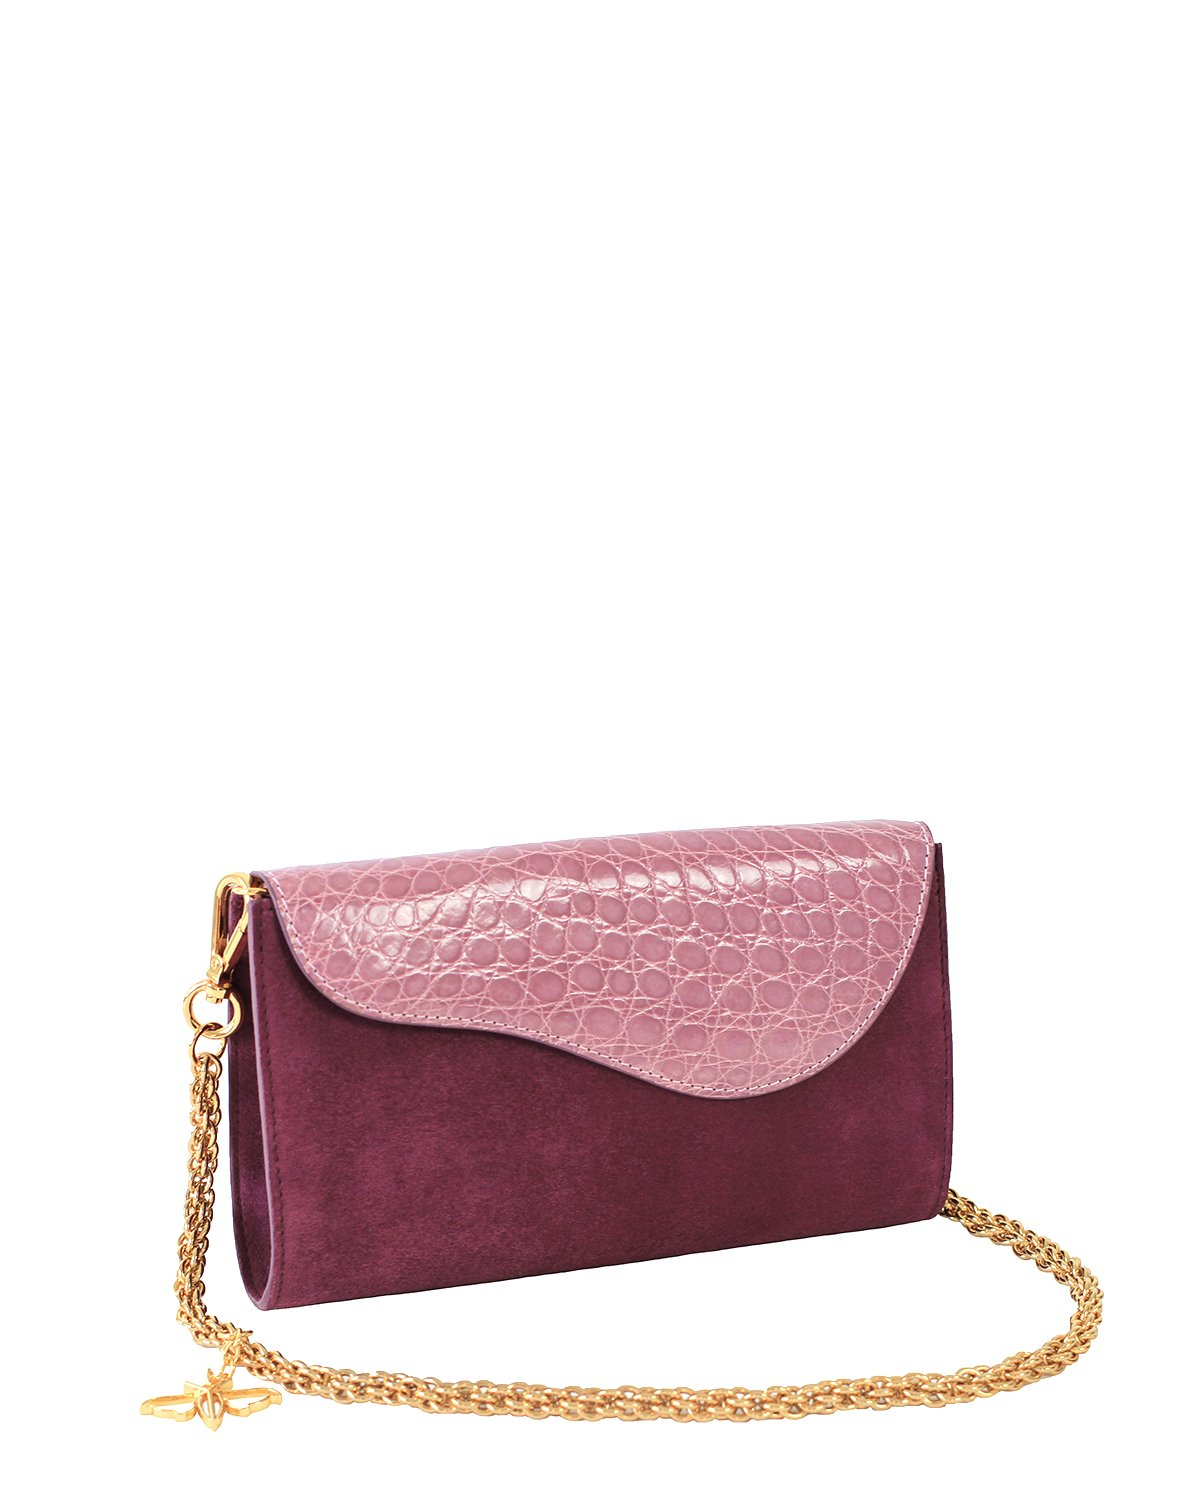 PINK VIOLET GRAY ALLIGATOR OSTRICH OSCAR CLUTCH YELLOW GOLD YARA BASHOOR ANGLE VIEW